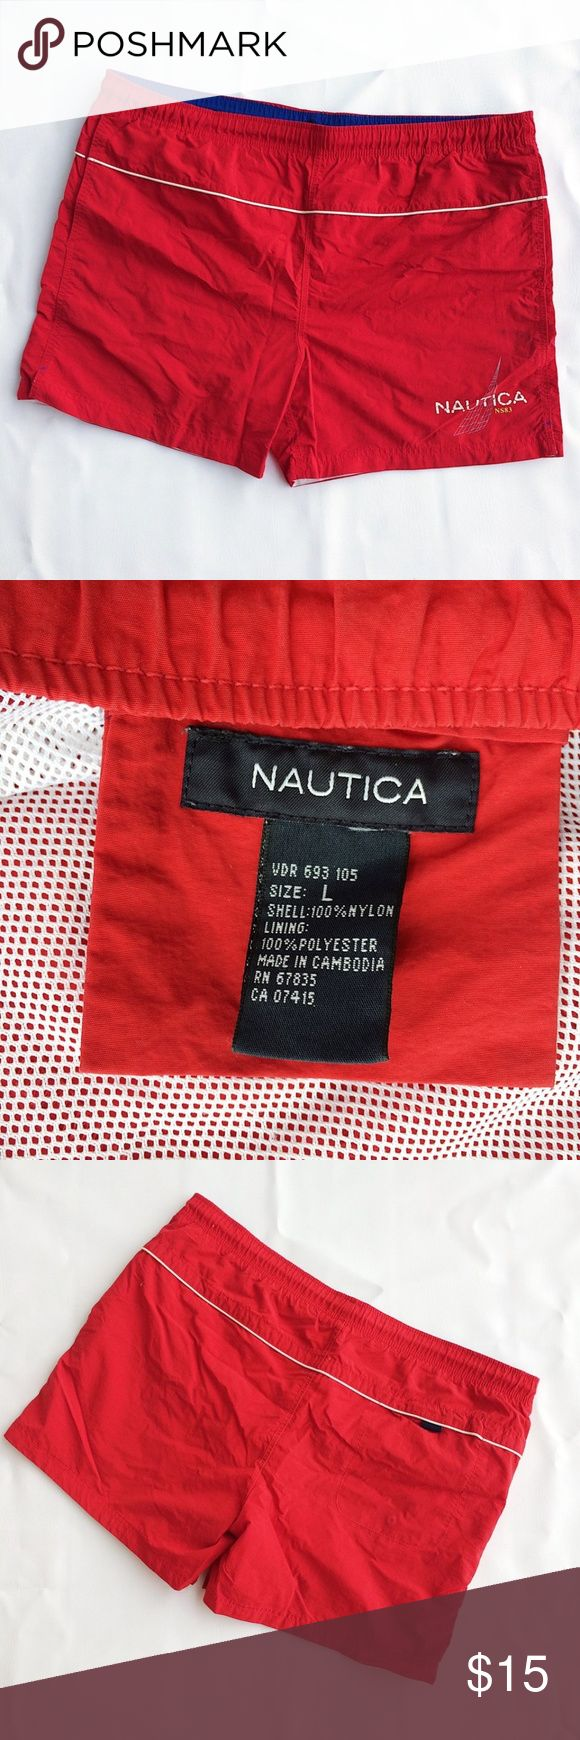 Red Nautica Mesh Swim Trunks Shorts Mens Large Red Spellout Nautica trunks. Mesh and drawstring intact. Men's size Large. Excellent condition. Slight print fading Nautica Swim Swim Trunks